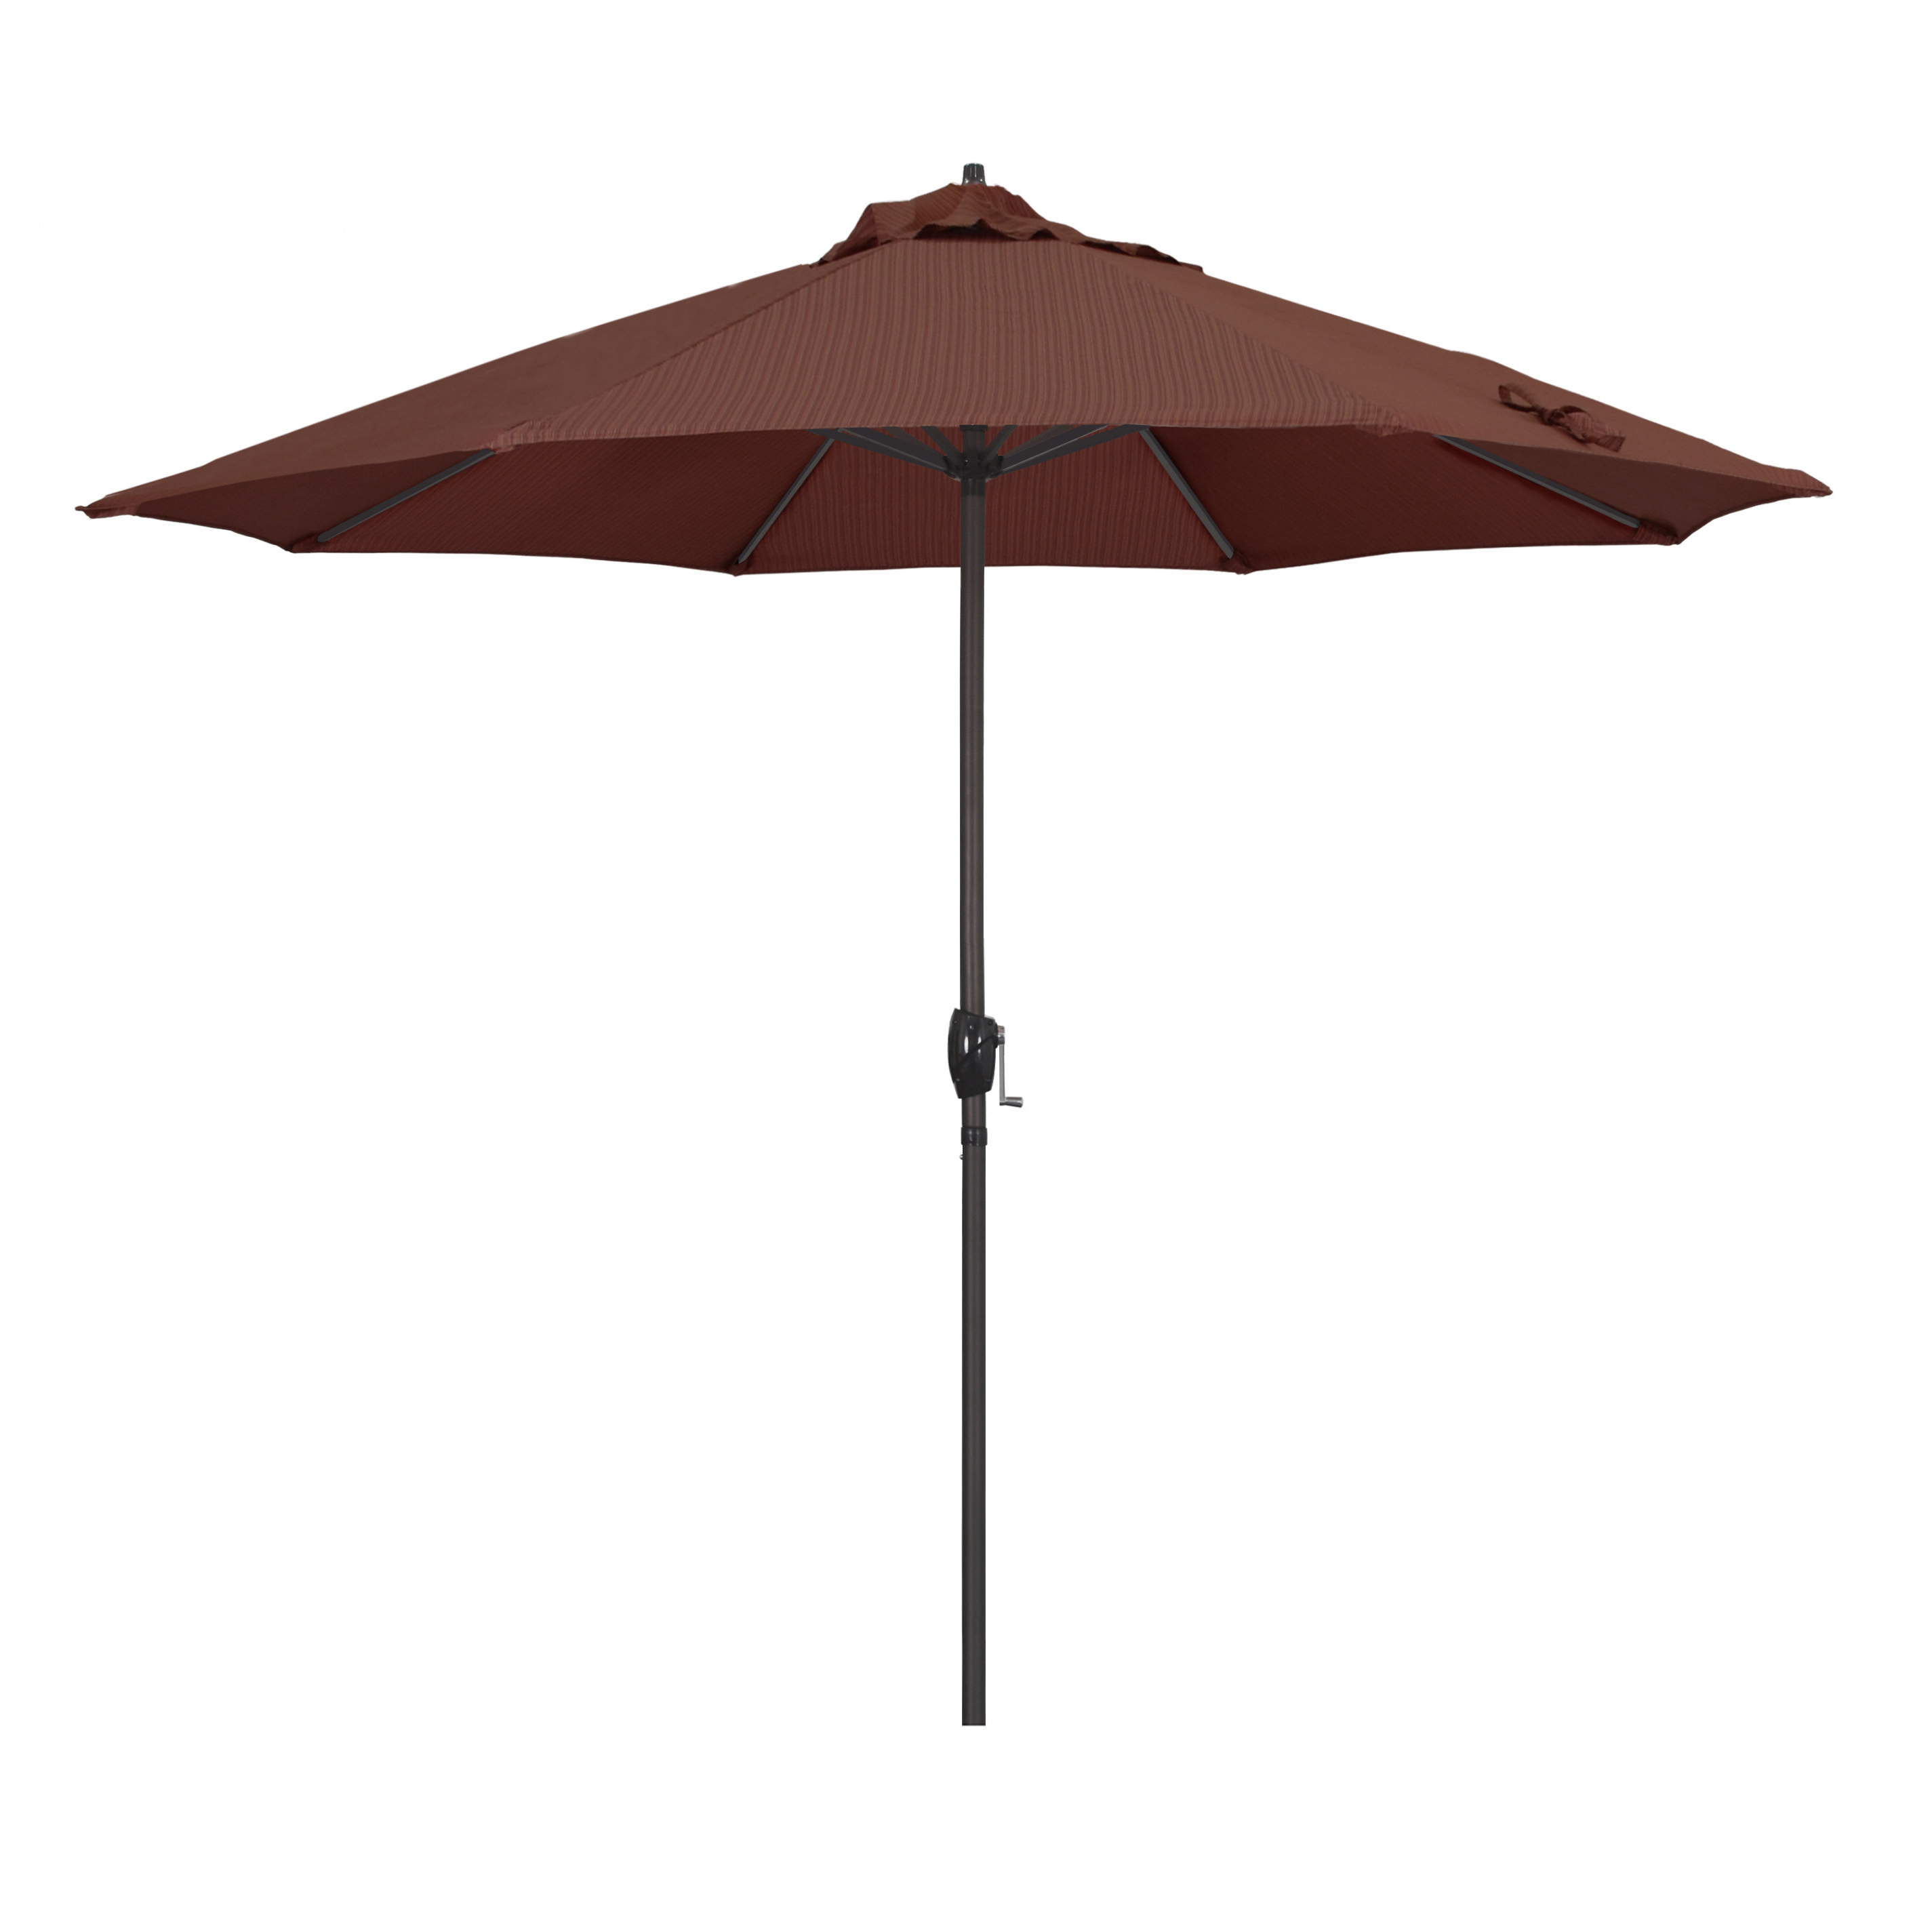 Maglione Fabric 4Cantilever Umbrellas For Best And Newest Sol 72 Outdoor Cardine 9' Market Umbrella (Gallery 20 of 20)